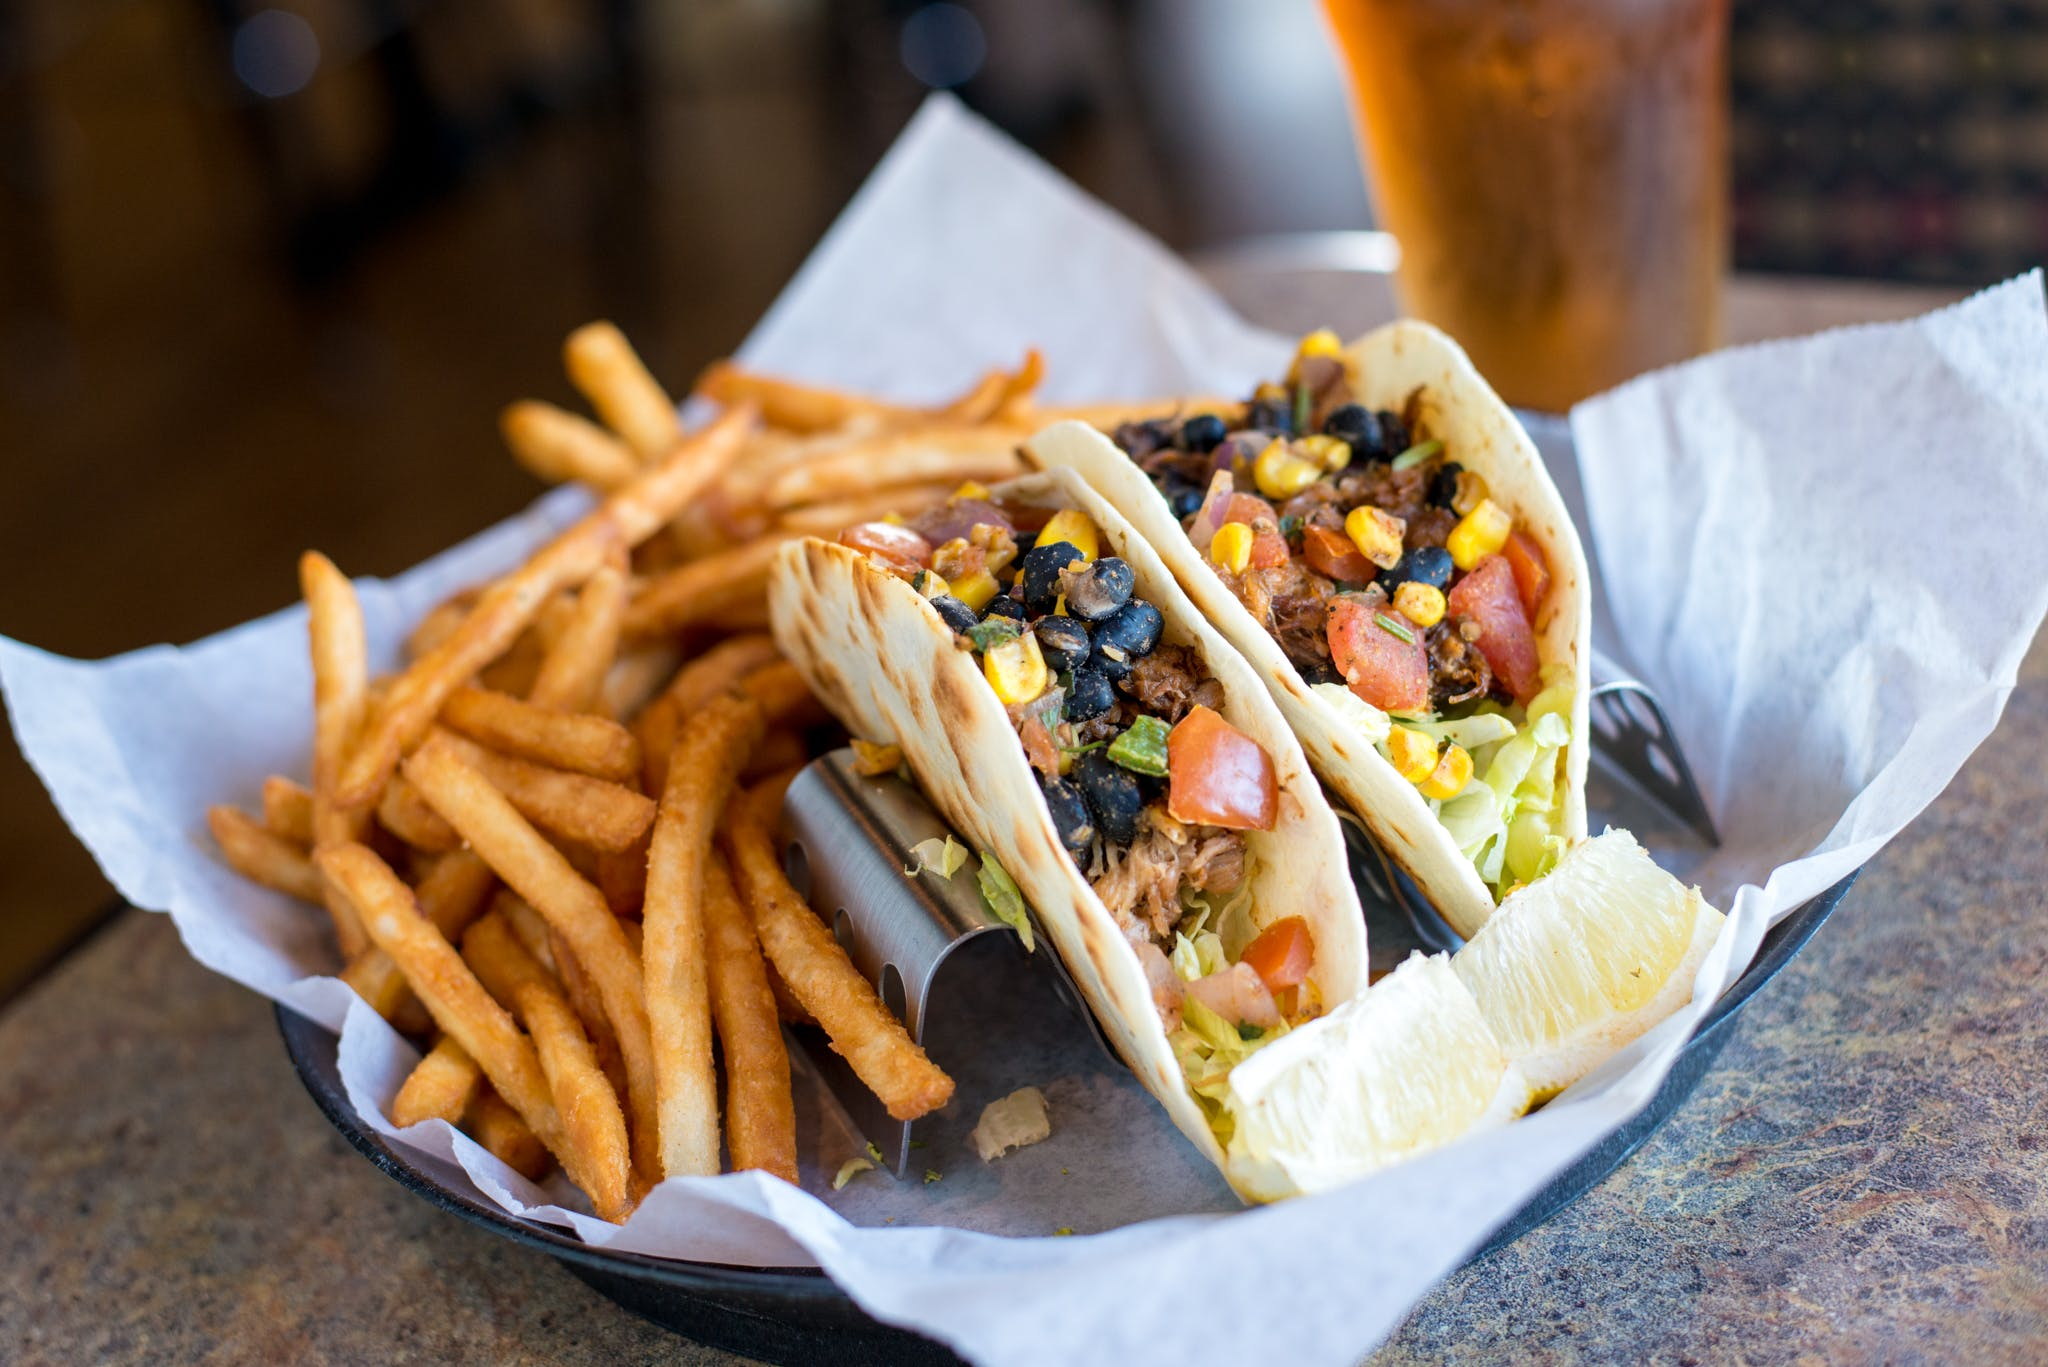 Chipotle Fish or Pulled Pork Tacos from Brickhouse Craft Burgers & Brews in De Pere, WI